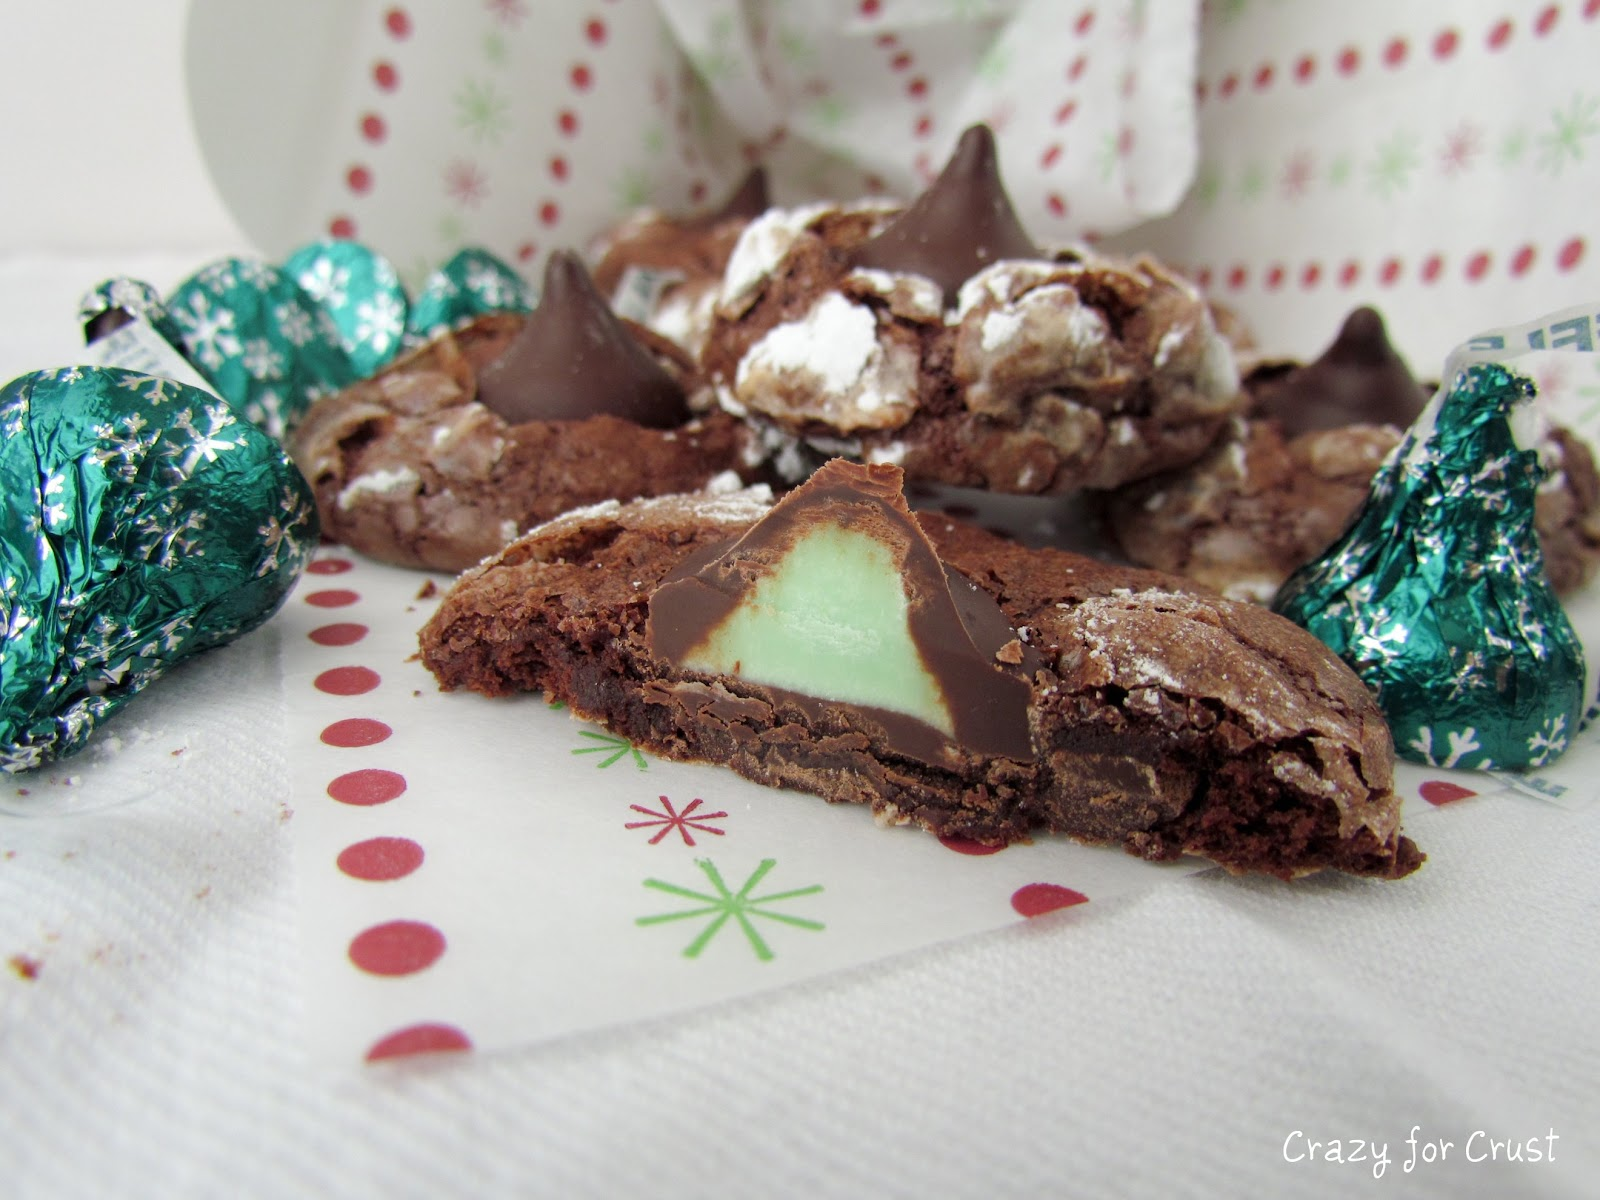 Chocolate Mint Kiss Crinkles - Crazy for Crust